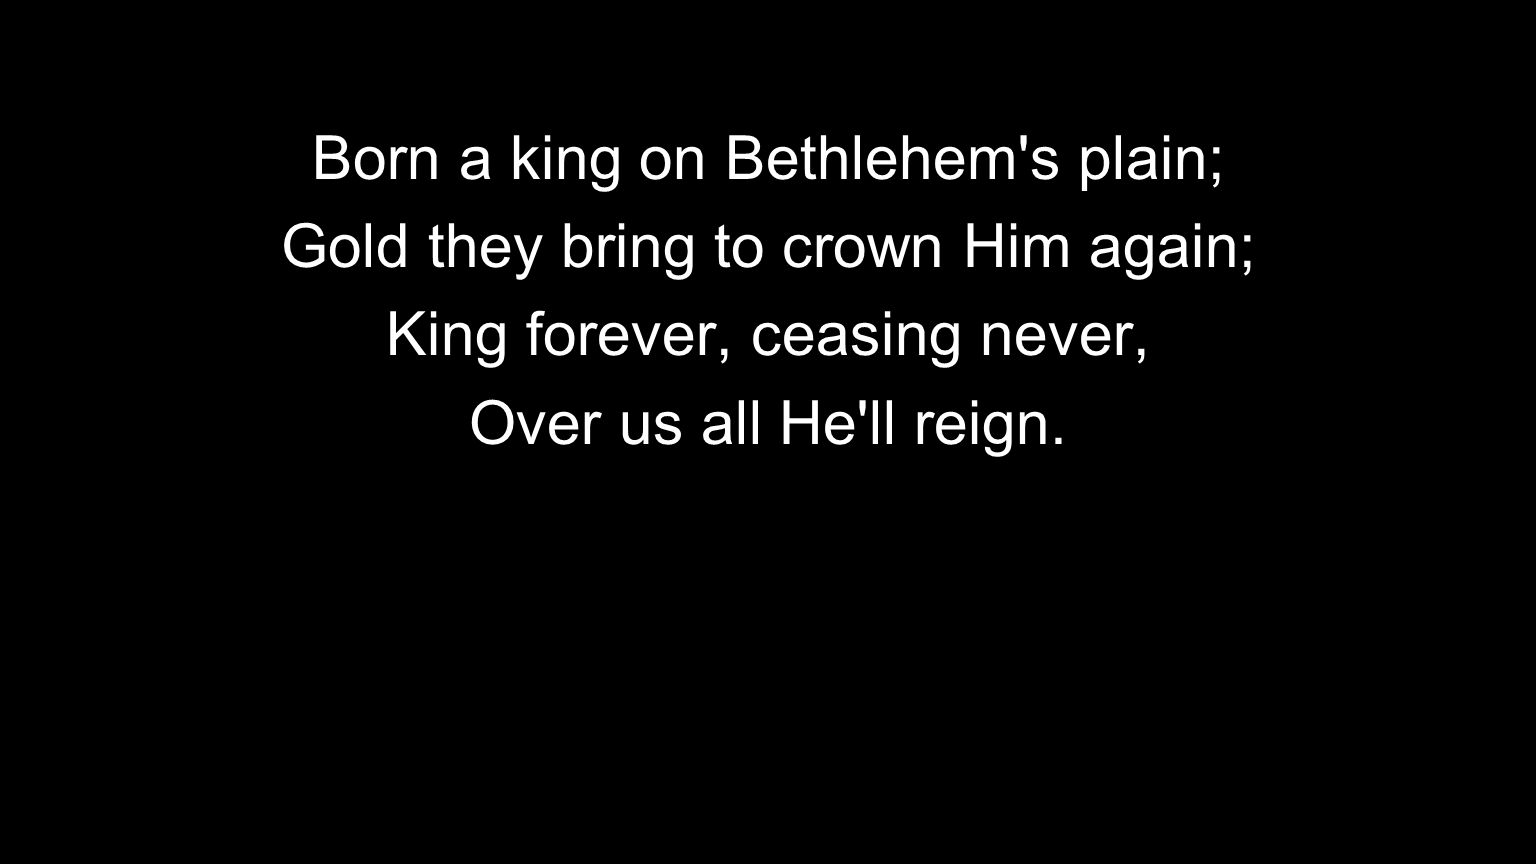 Born a king on Bethlehem s plain; Gold they bring to crown Him again;